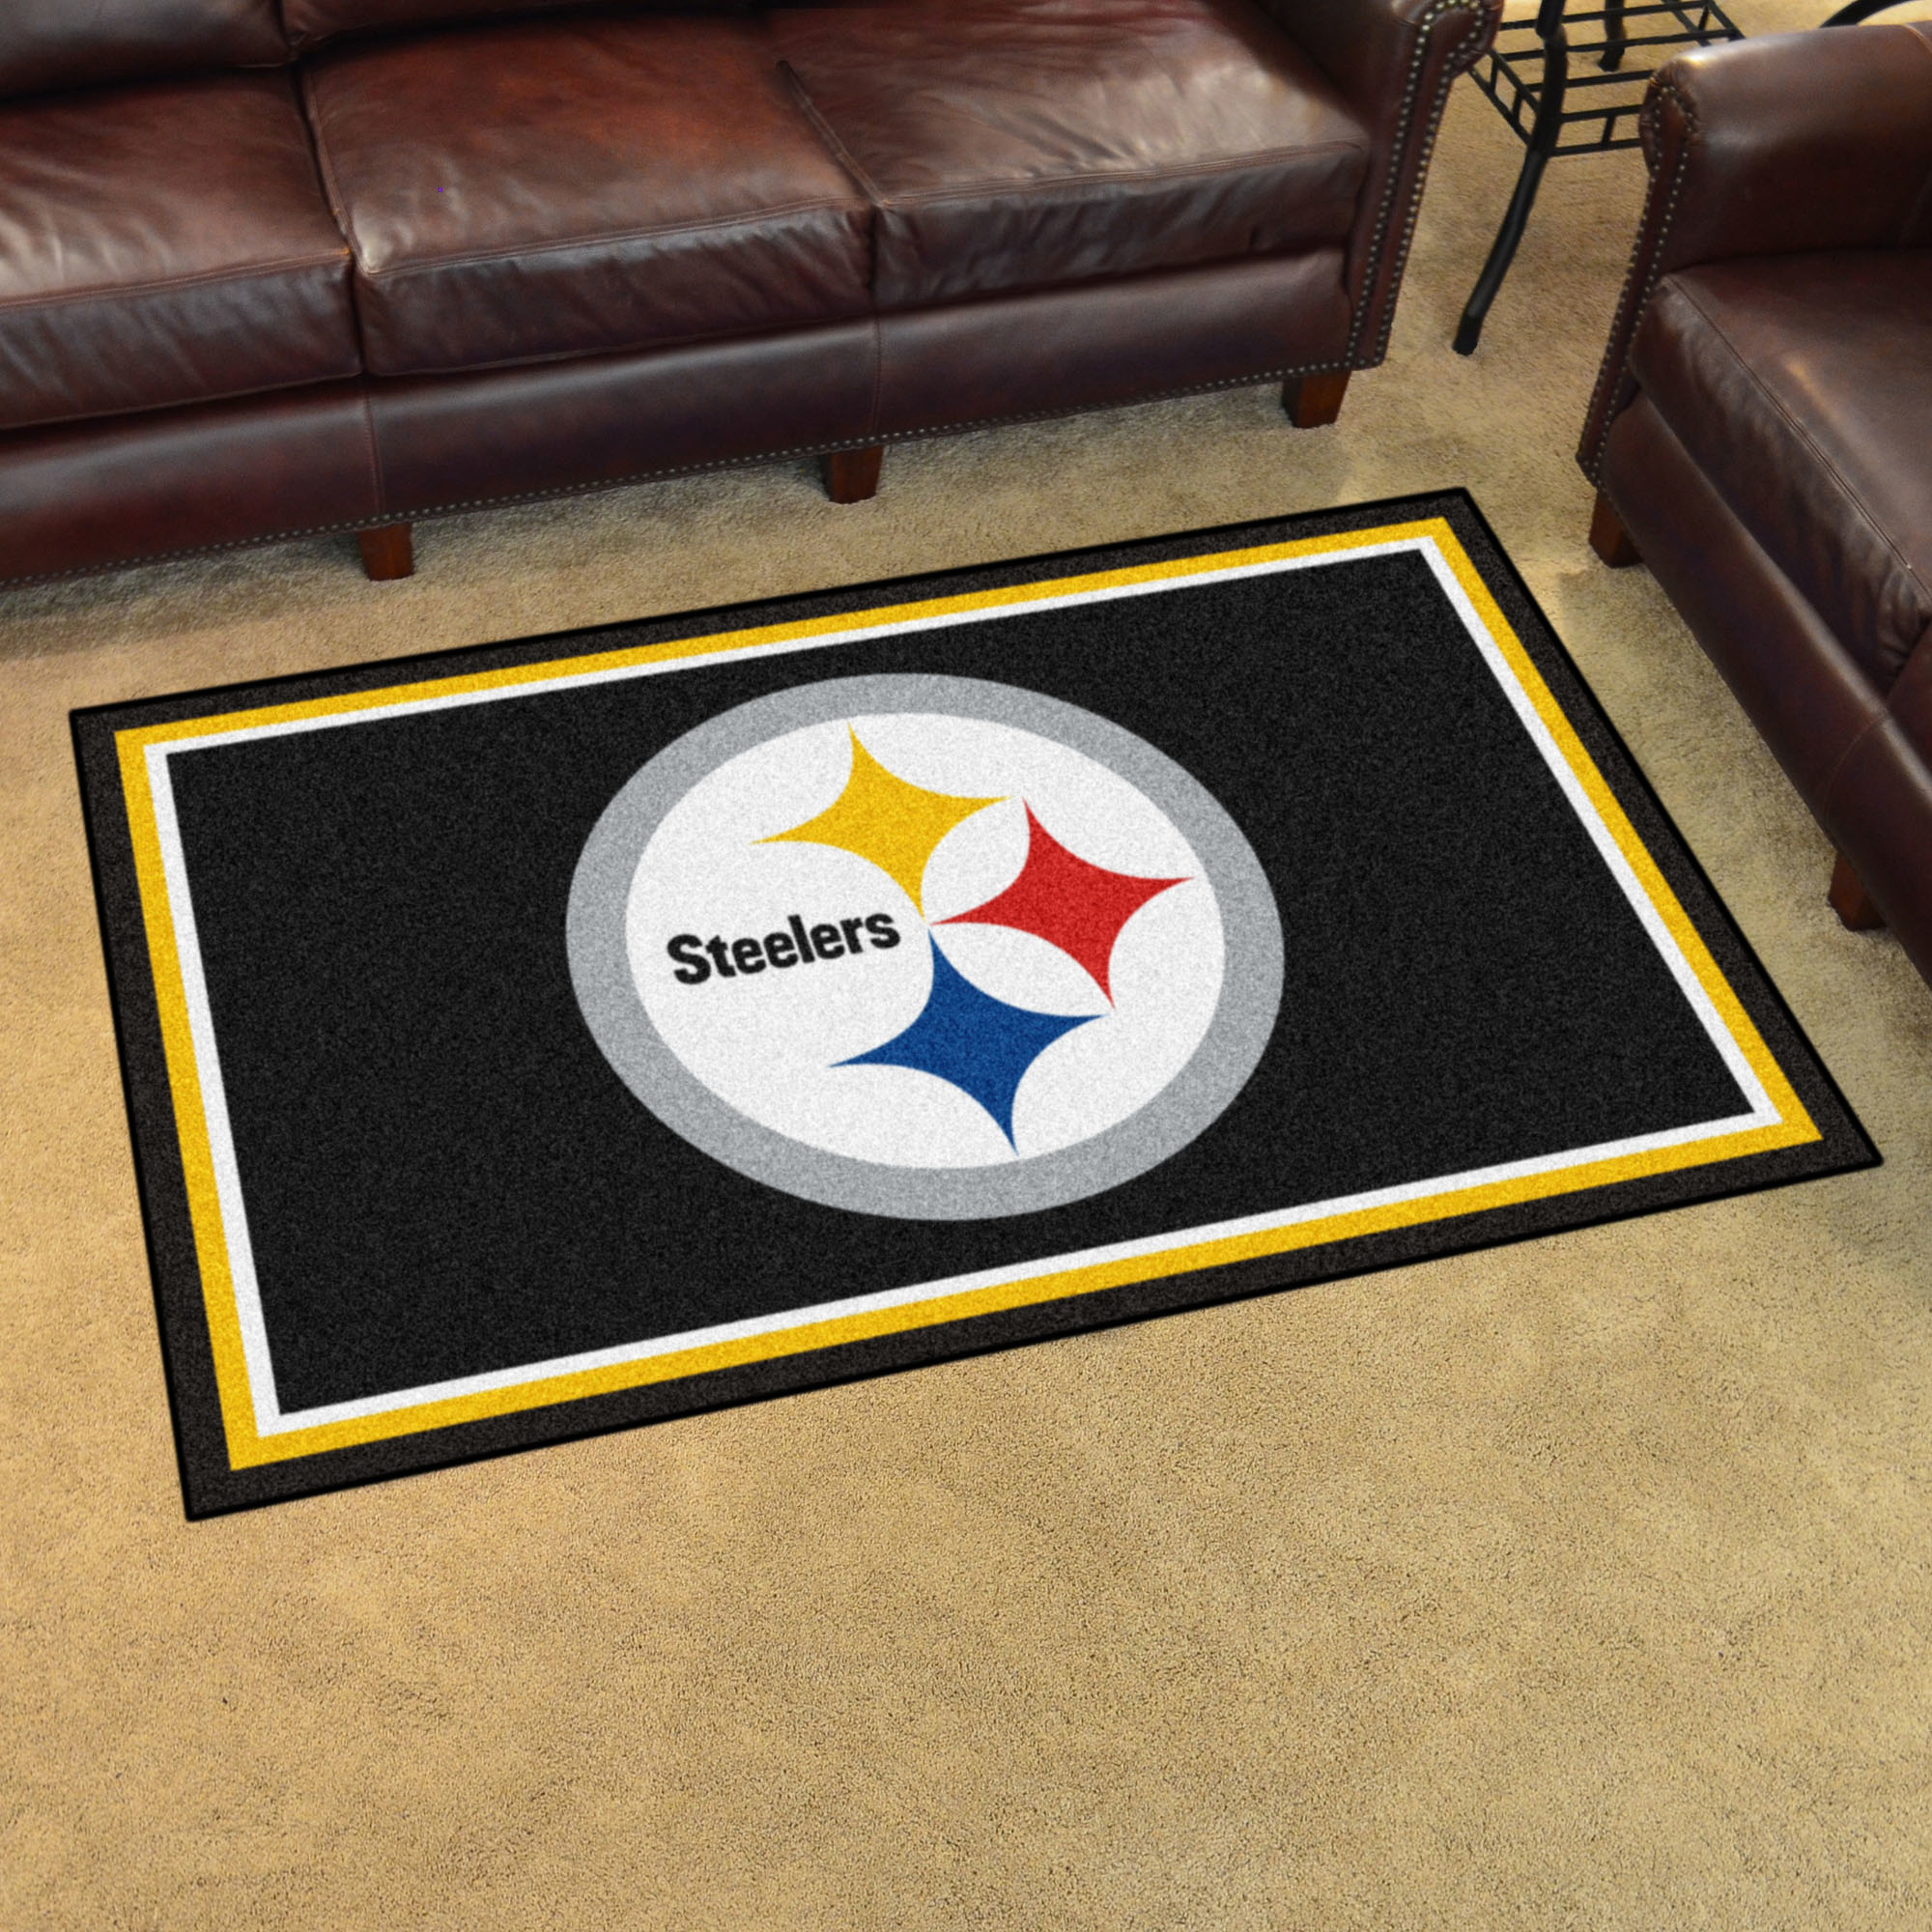 Fanmats Sports Licensing Solutions Llc Nfl